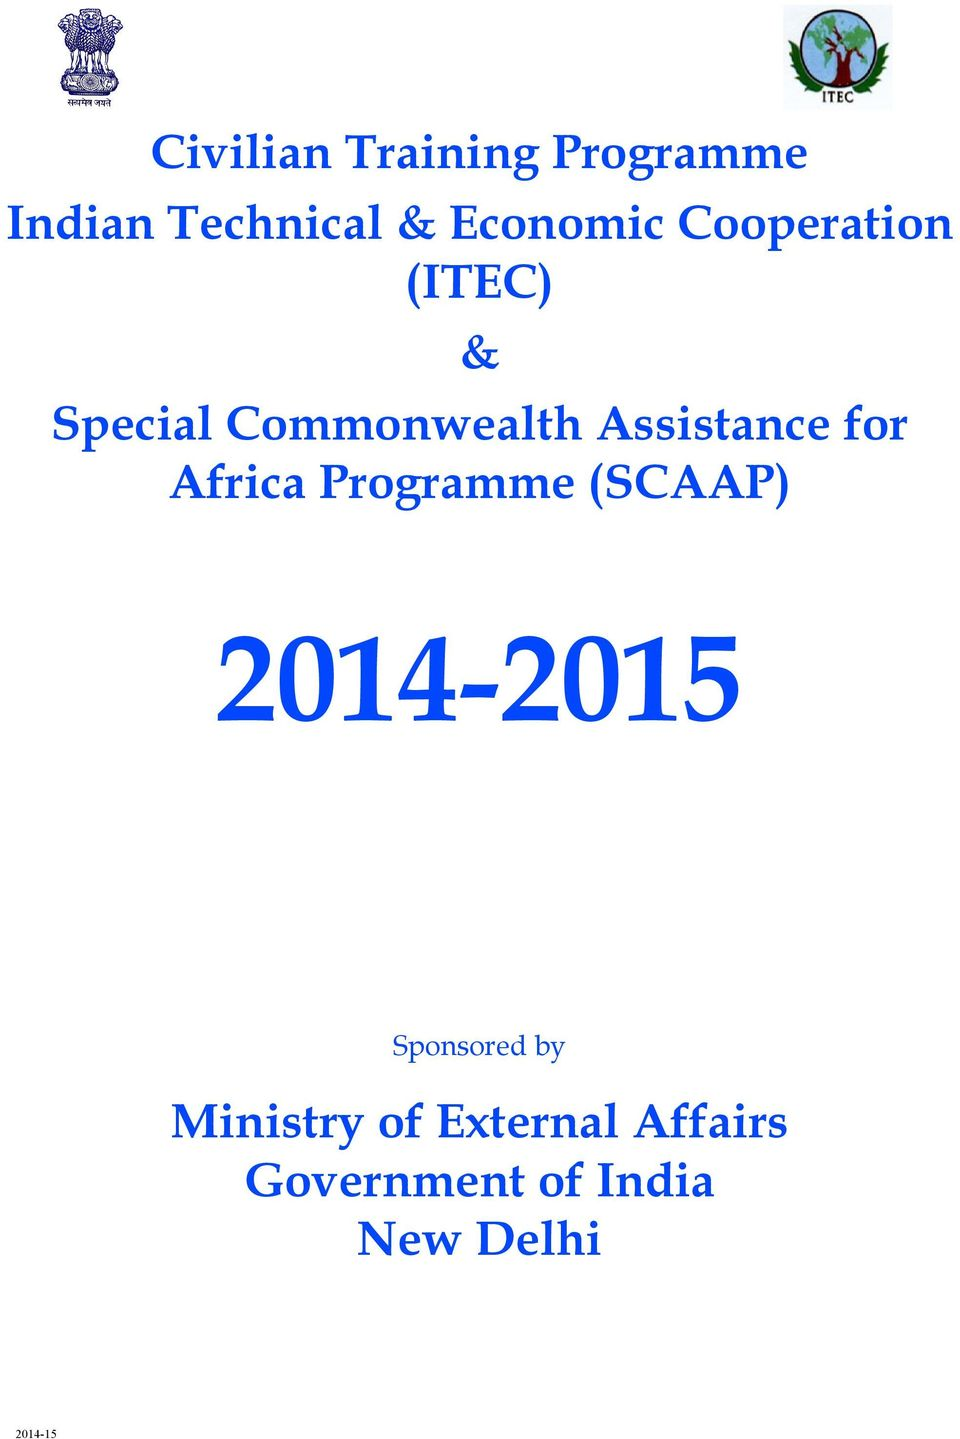 Assistance for Africa Programme (SCAAP) 2014-2015